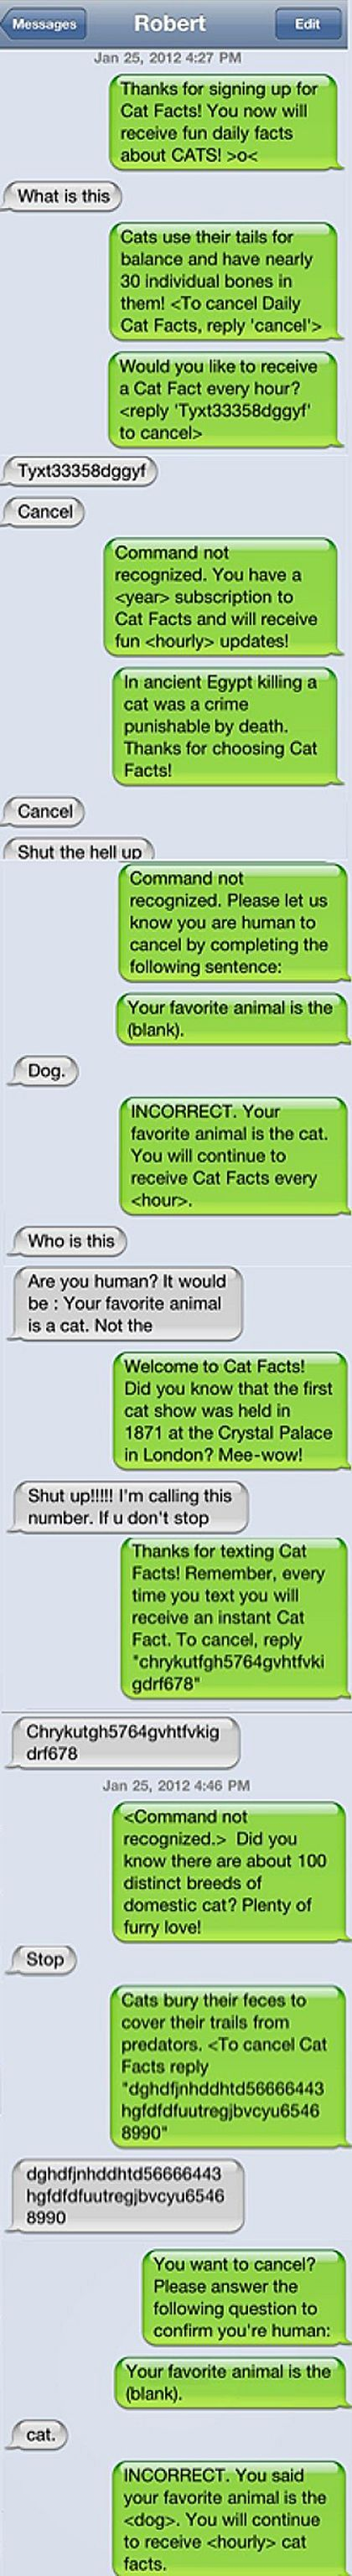 I'm definitely doing this to one of my cat-hating friends!: